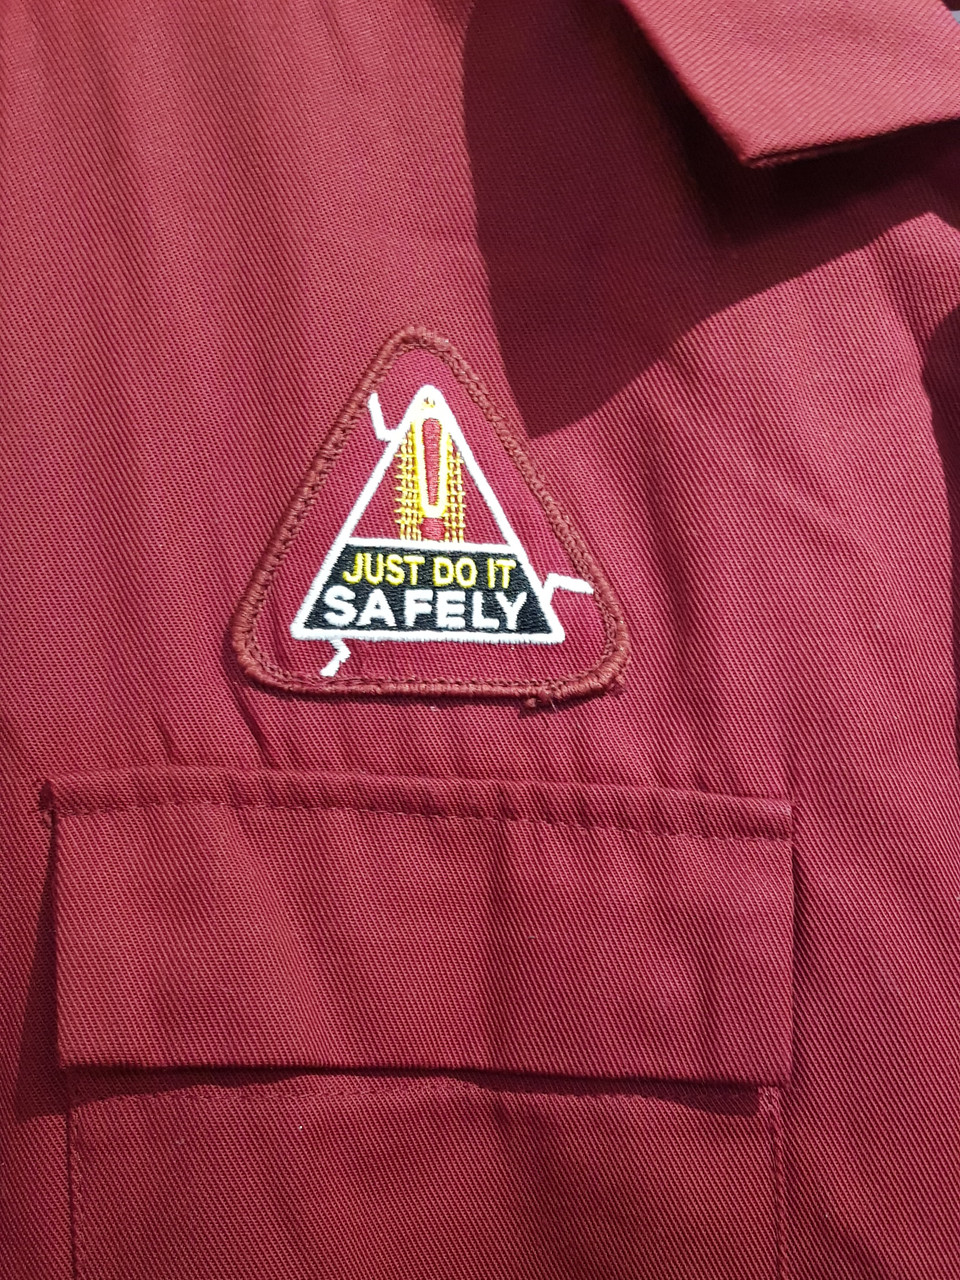 VT 3335.  NEW OLD STOCK WEARWELL  EWS  BOILER SUIT SIZE 116 R